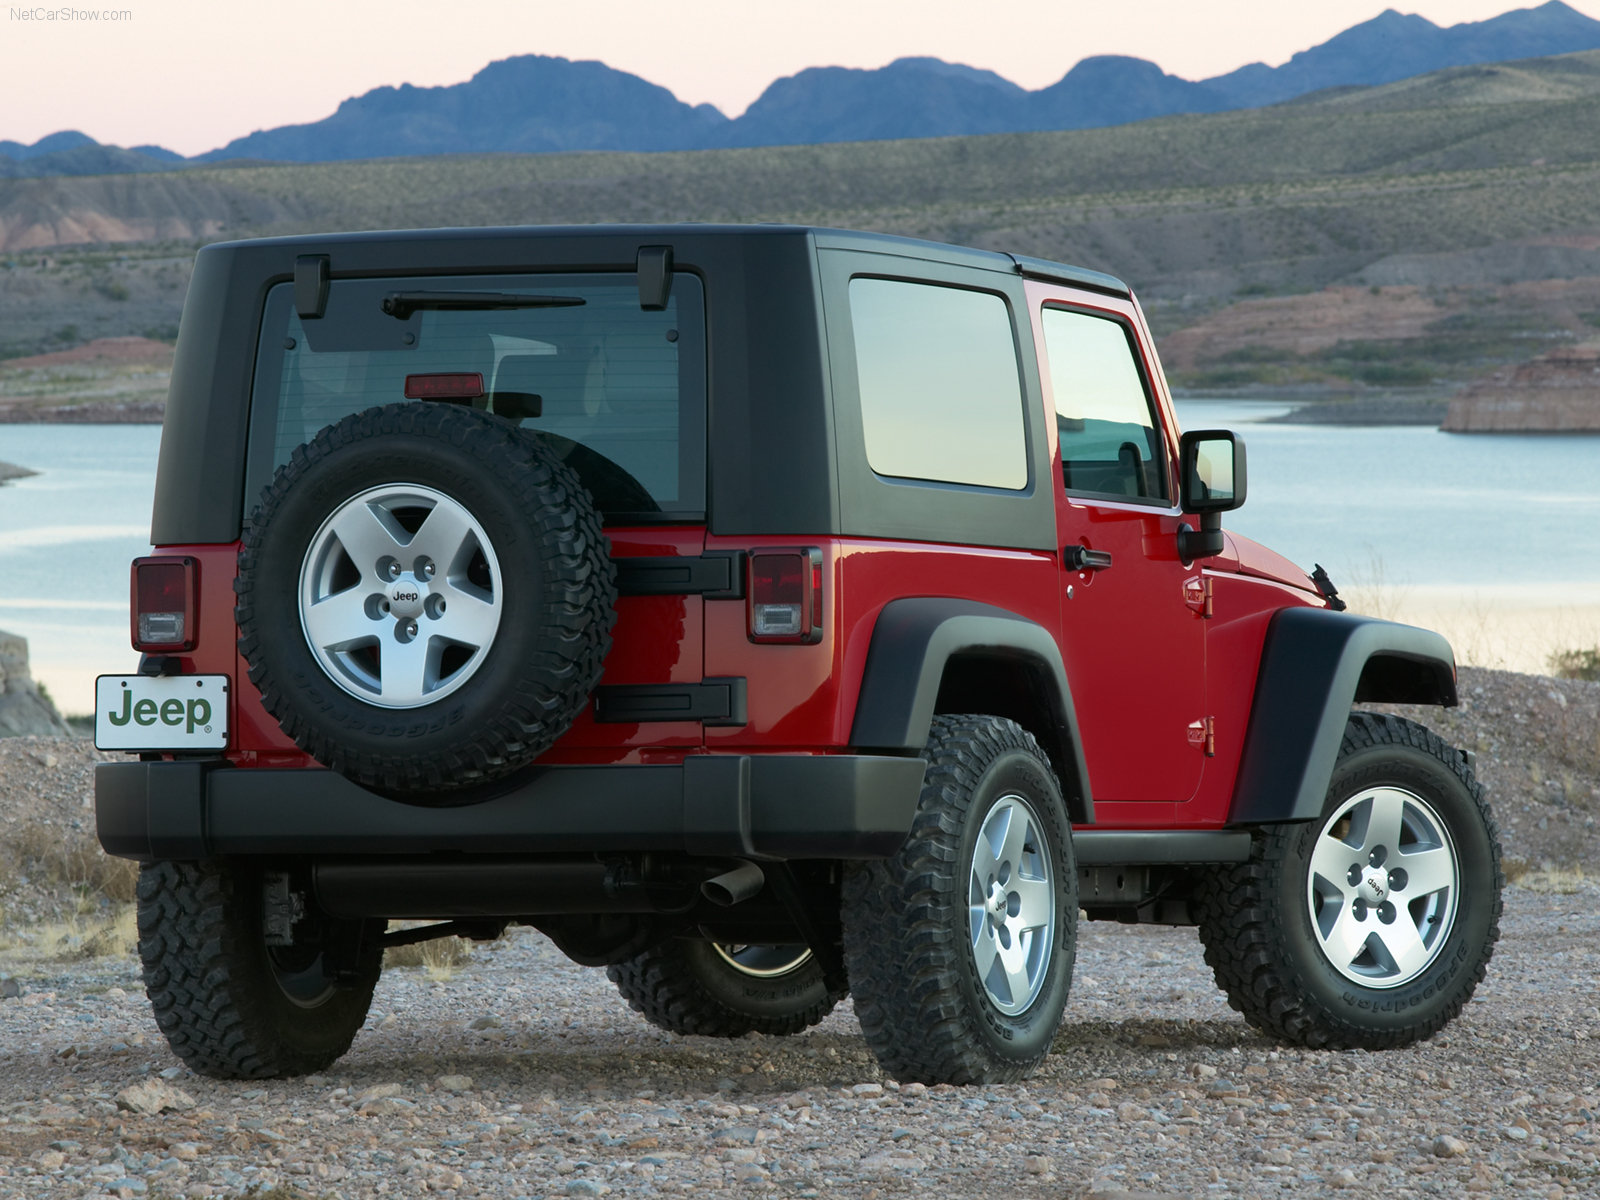 jeep wrangler rubicon photos photo gallery page 2. Black Bedroom Furniture Sets. Home Design Ideas